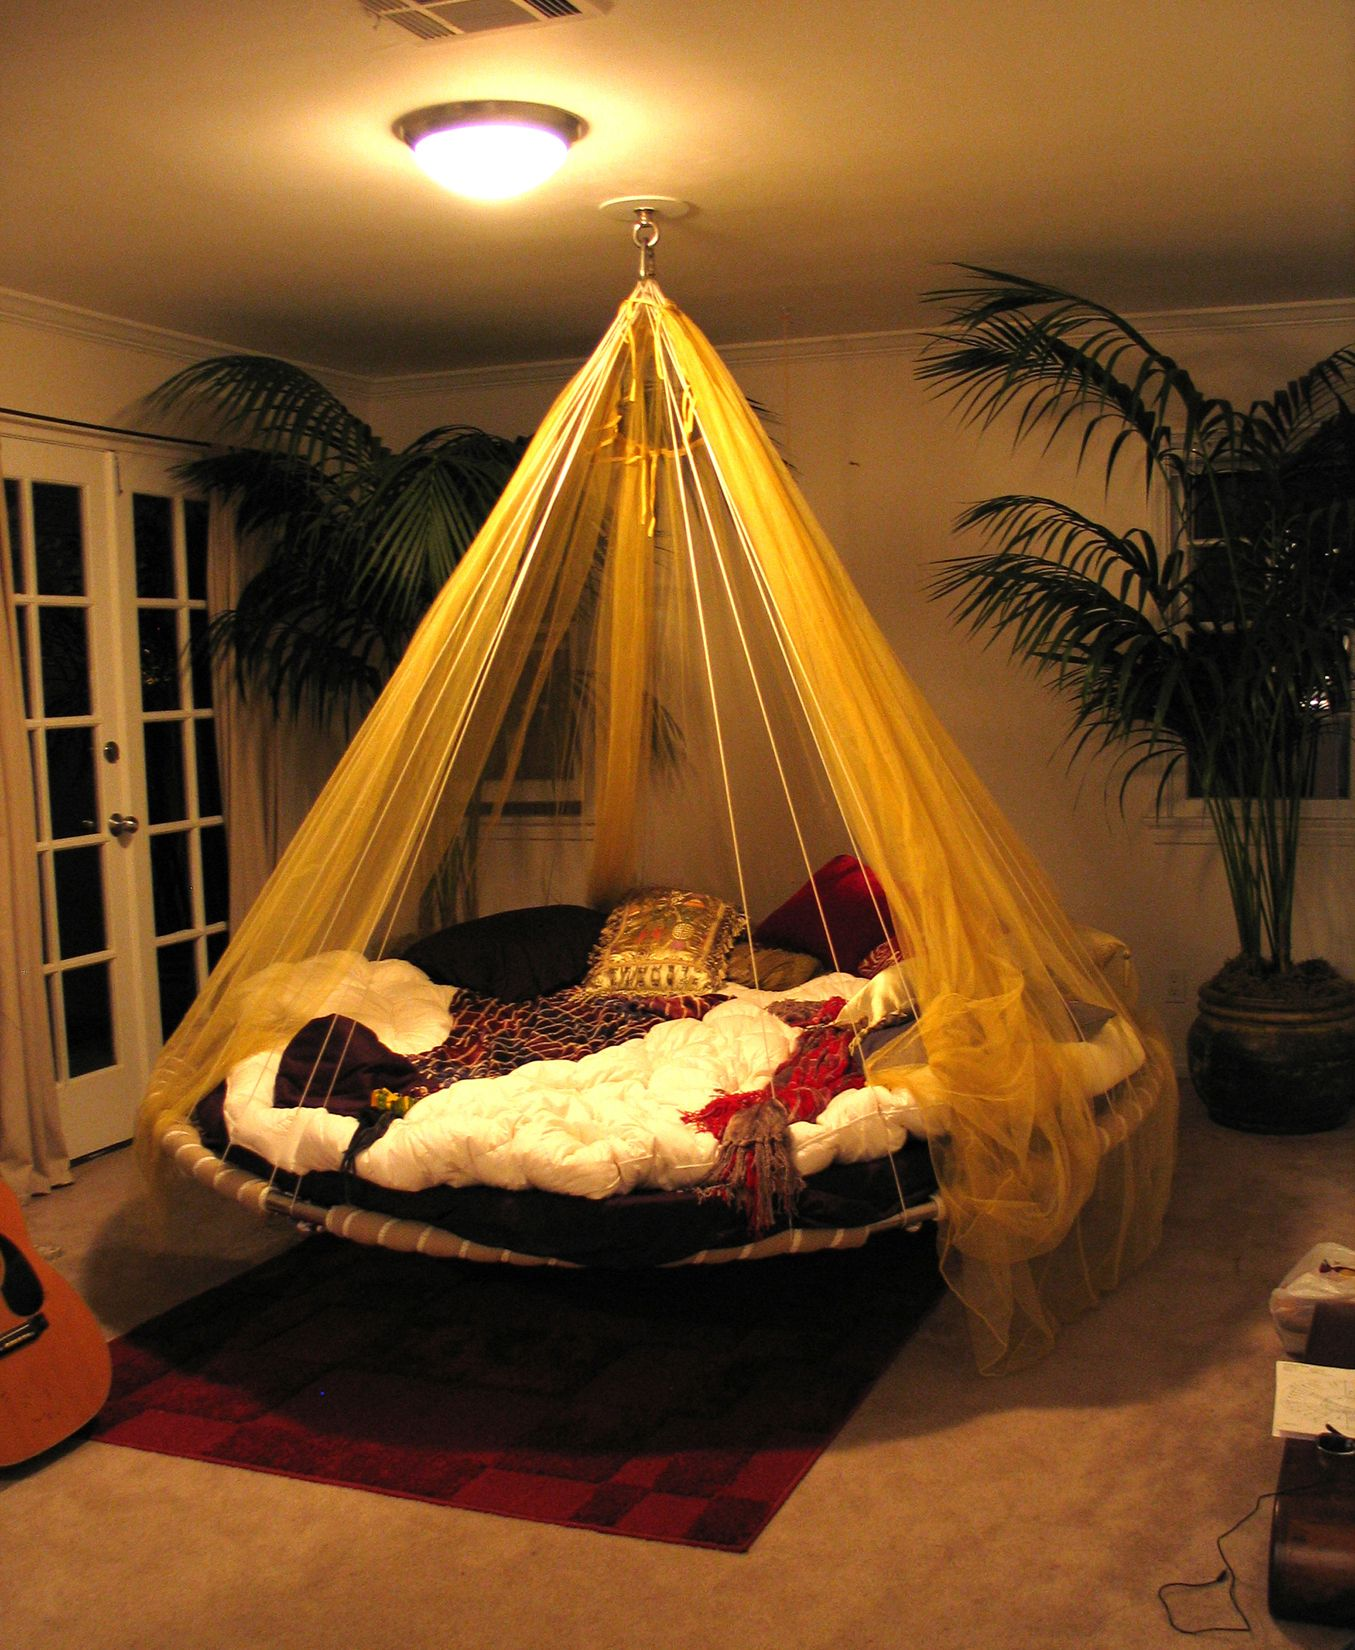 Daybed Outdoor Bed Canopy Bed The Floating Bed Co Indoor Hammock Bed Floating Bed Hanging Beds